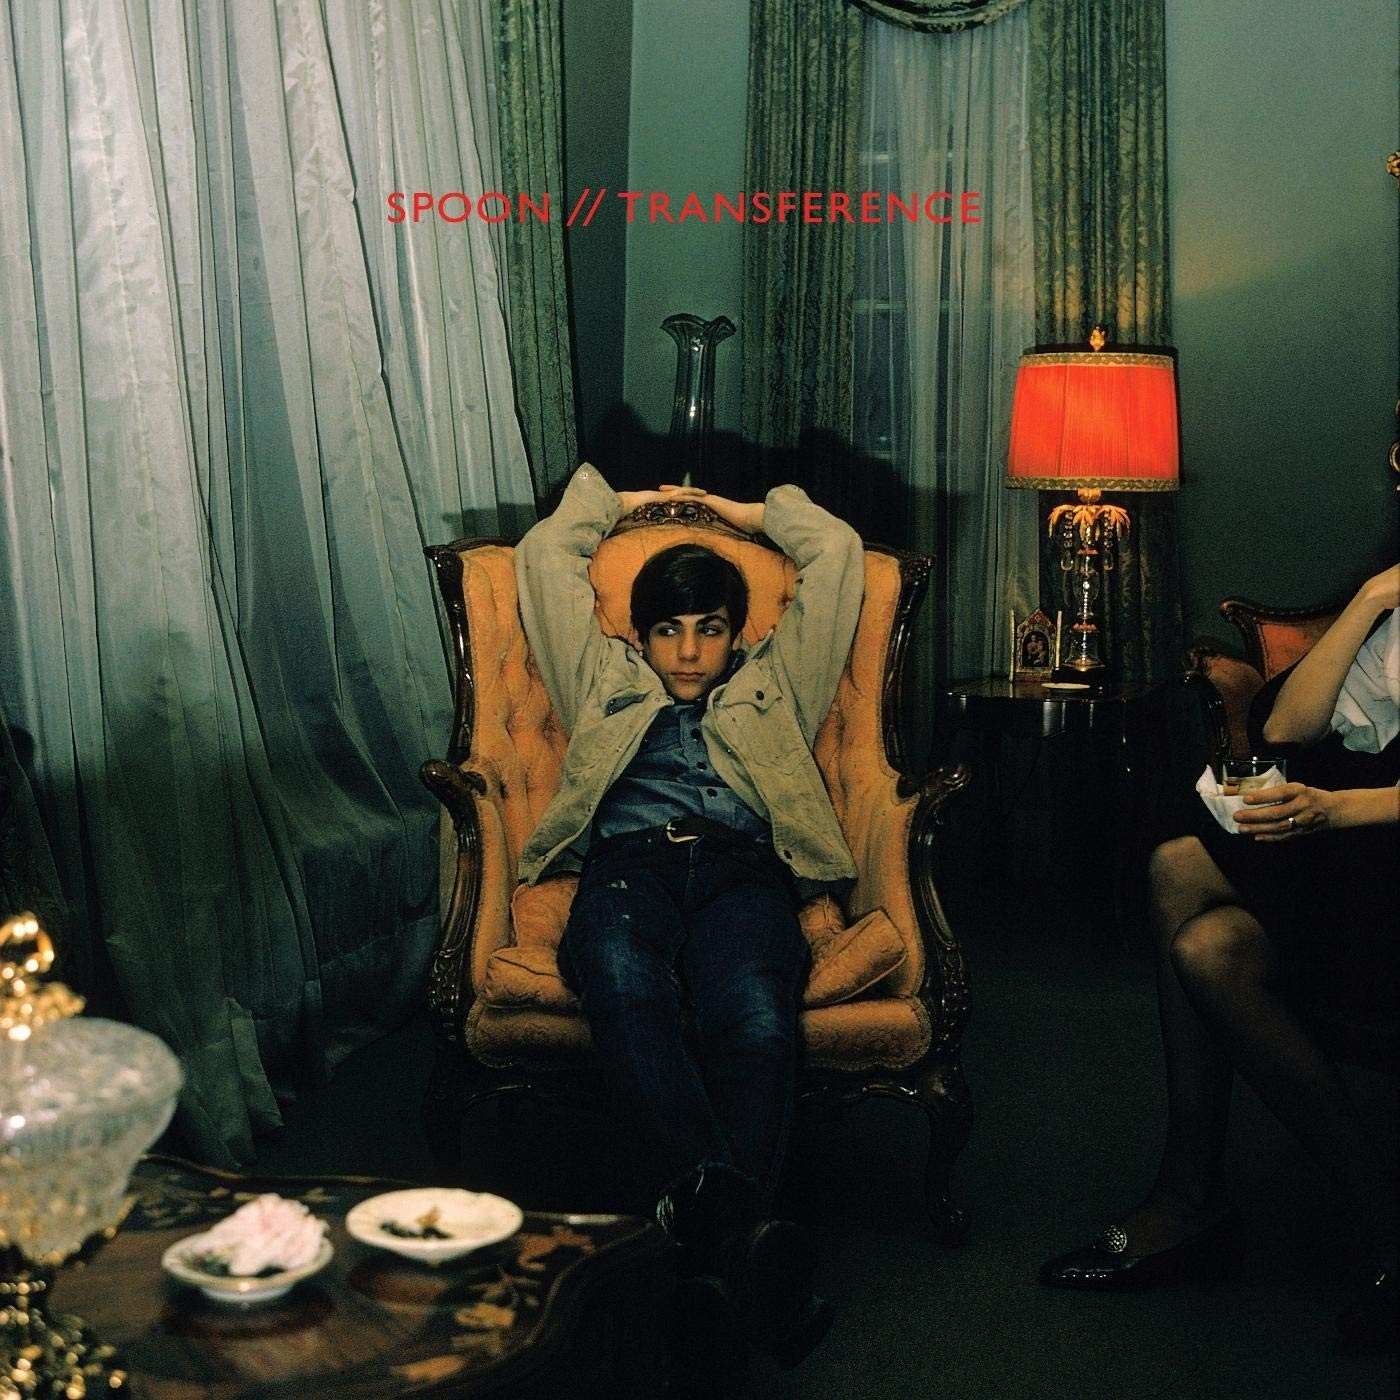 Spoon - Transference LP